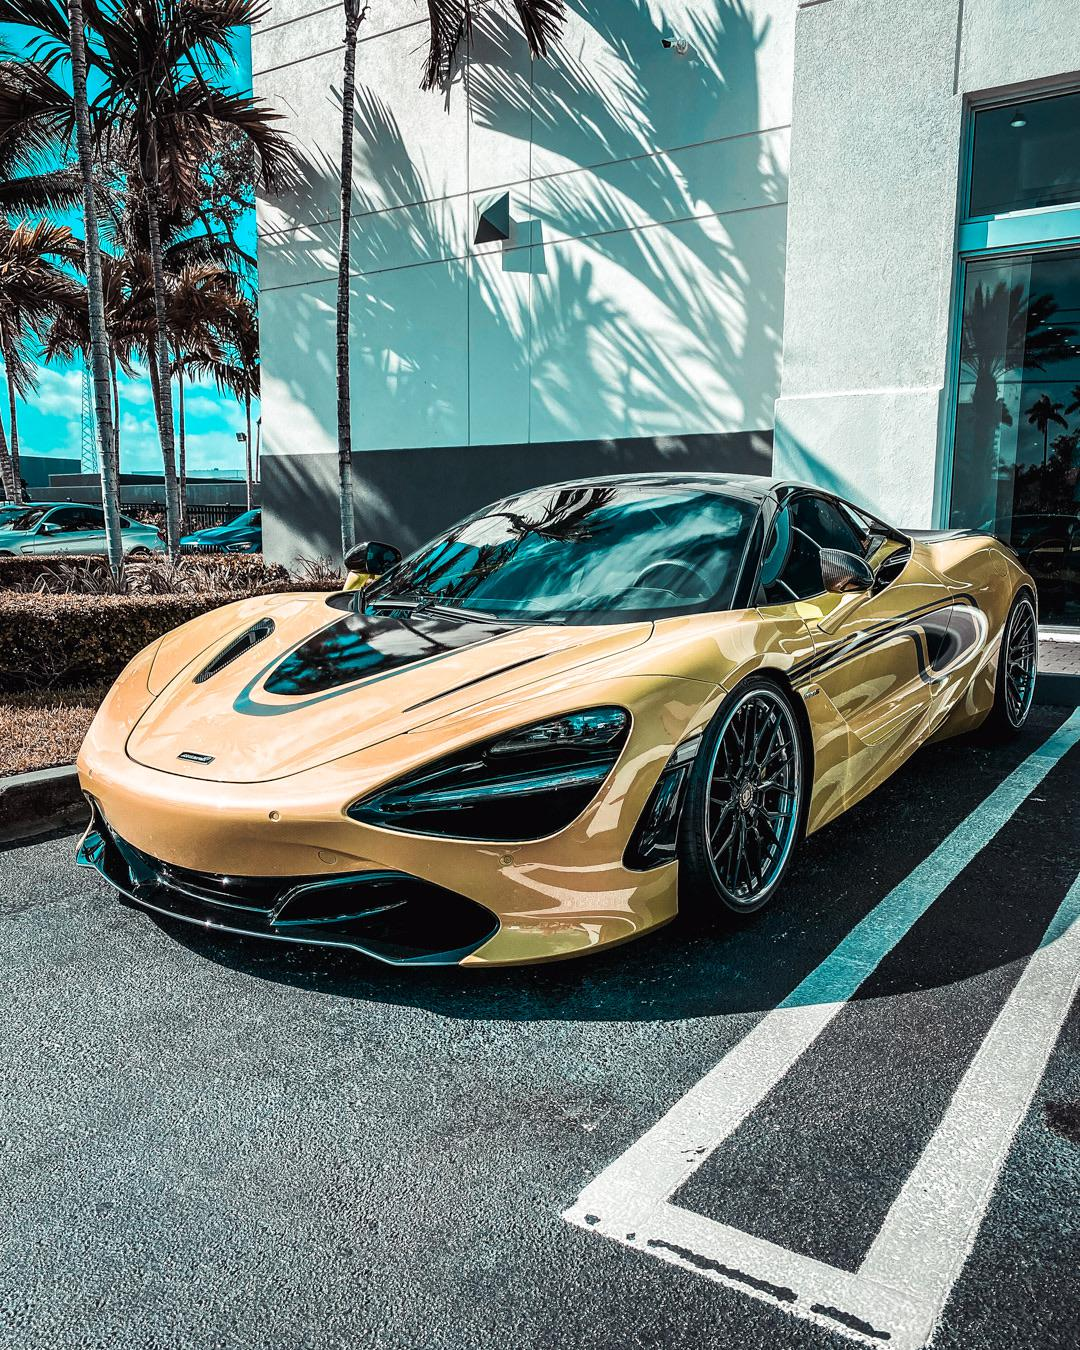 Over Saturated | McLaren 720S [OC]